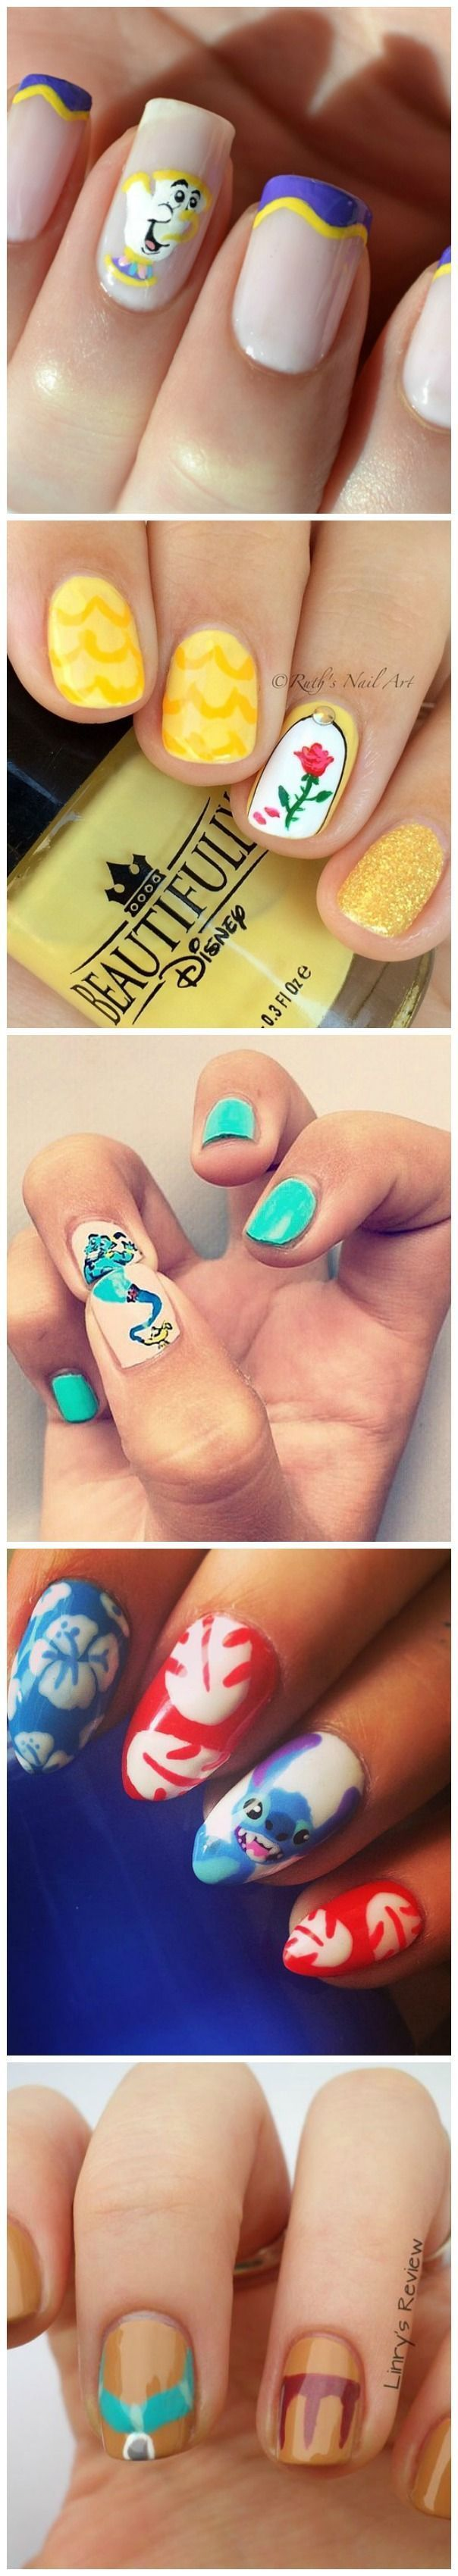 Disney nails - Disney inspired manicures